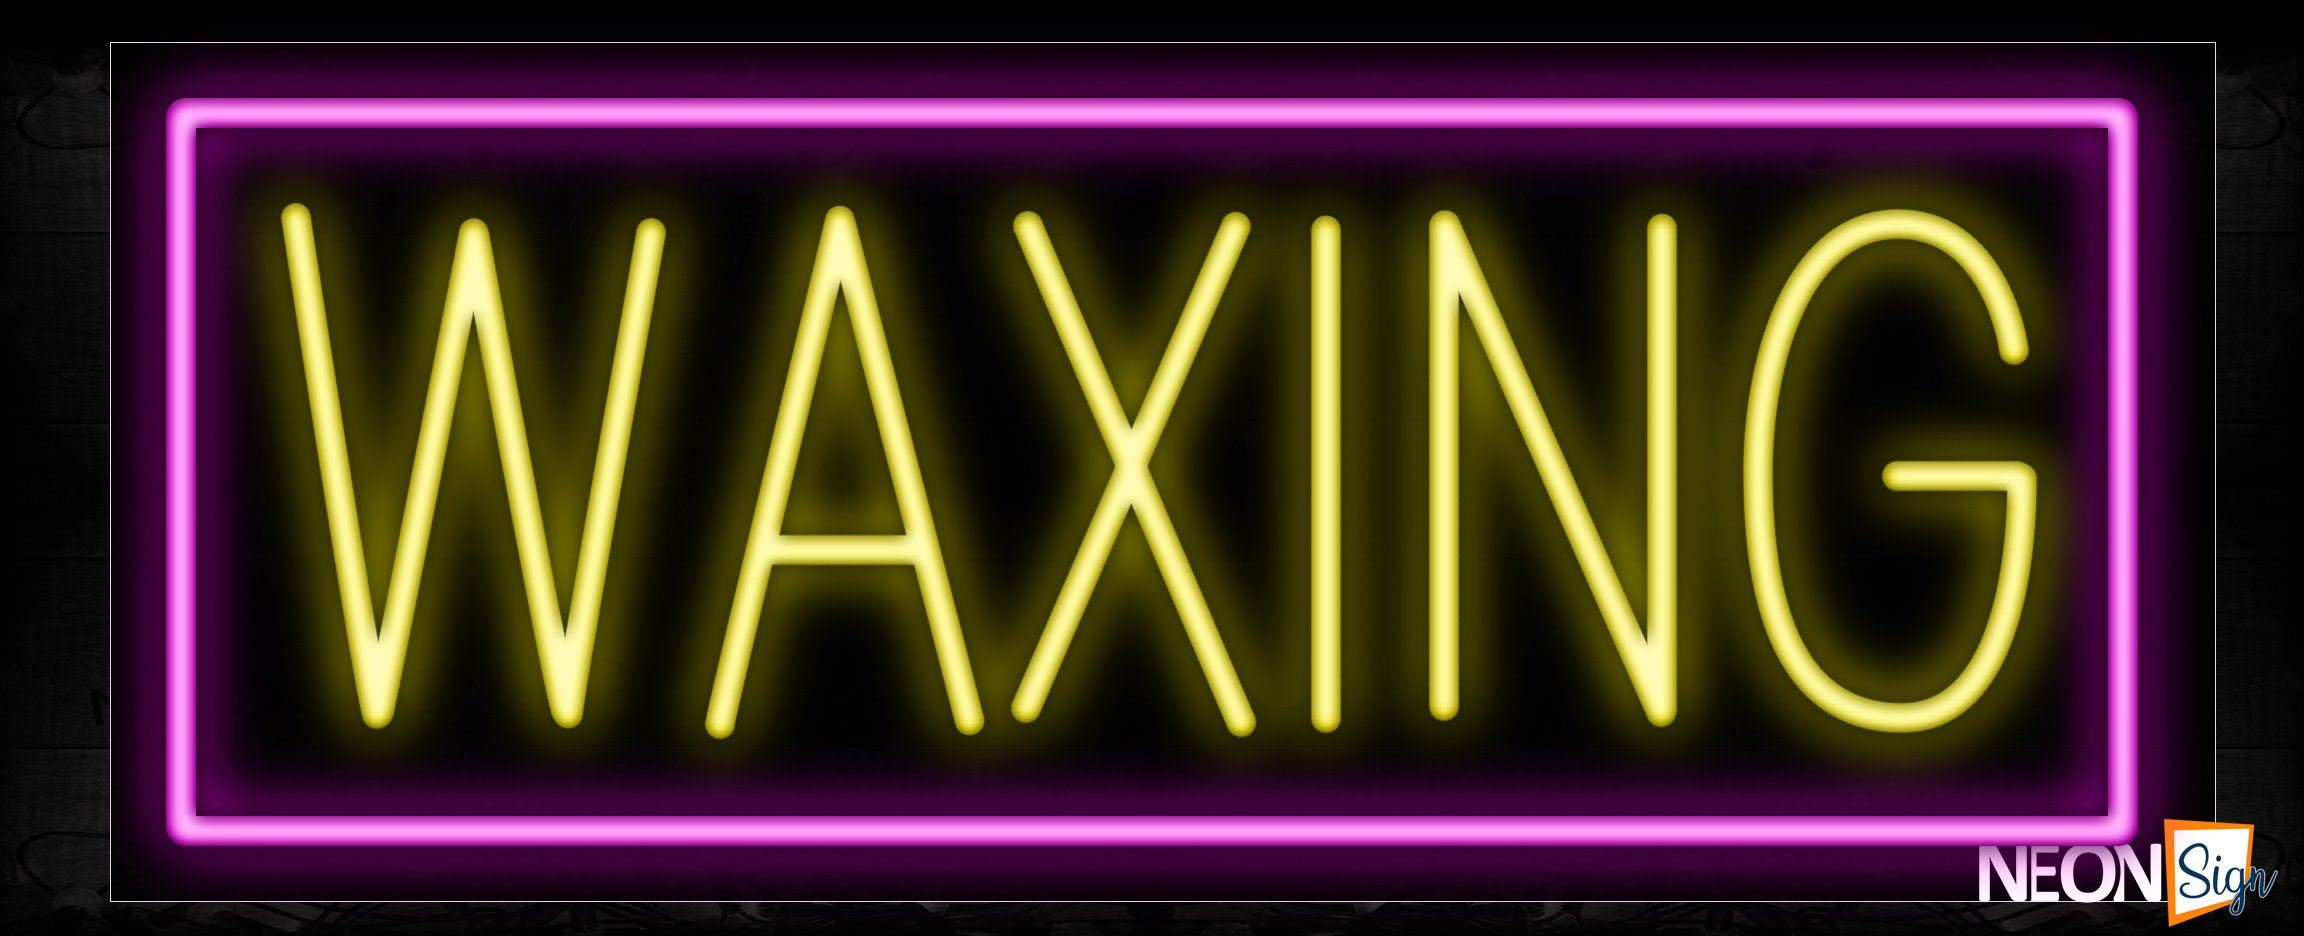 Image of 10145 Waxing in yellow with pink border Neon Sign_13x32 Black Backing